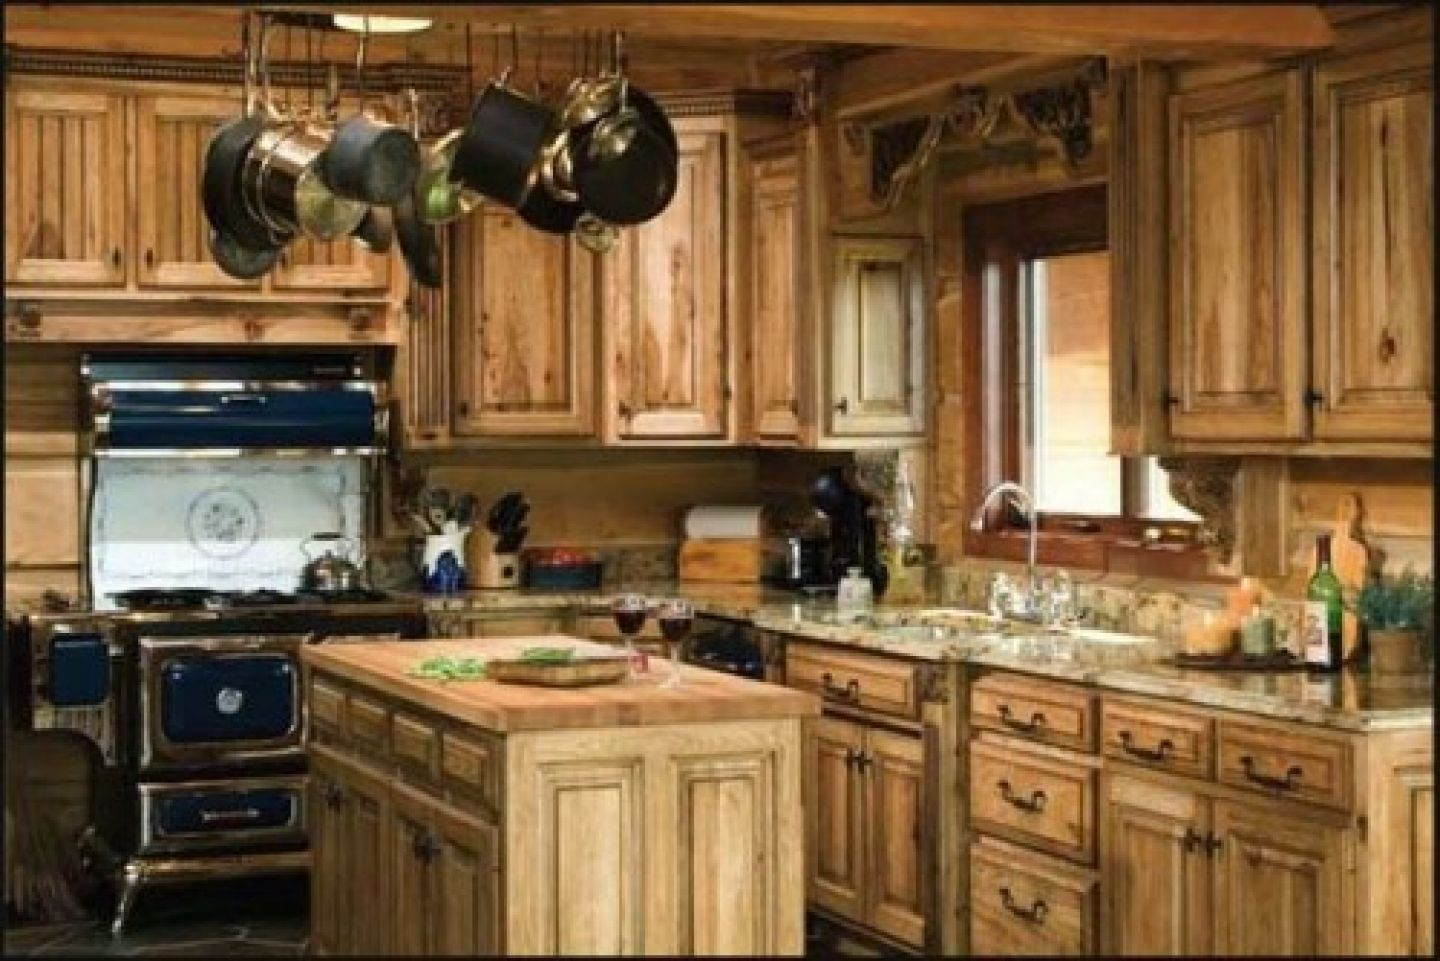 best rustic kitchen with wooden furniture and cabinet kitchen wallpaper design country on kitchen ideas cabinets id=84934